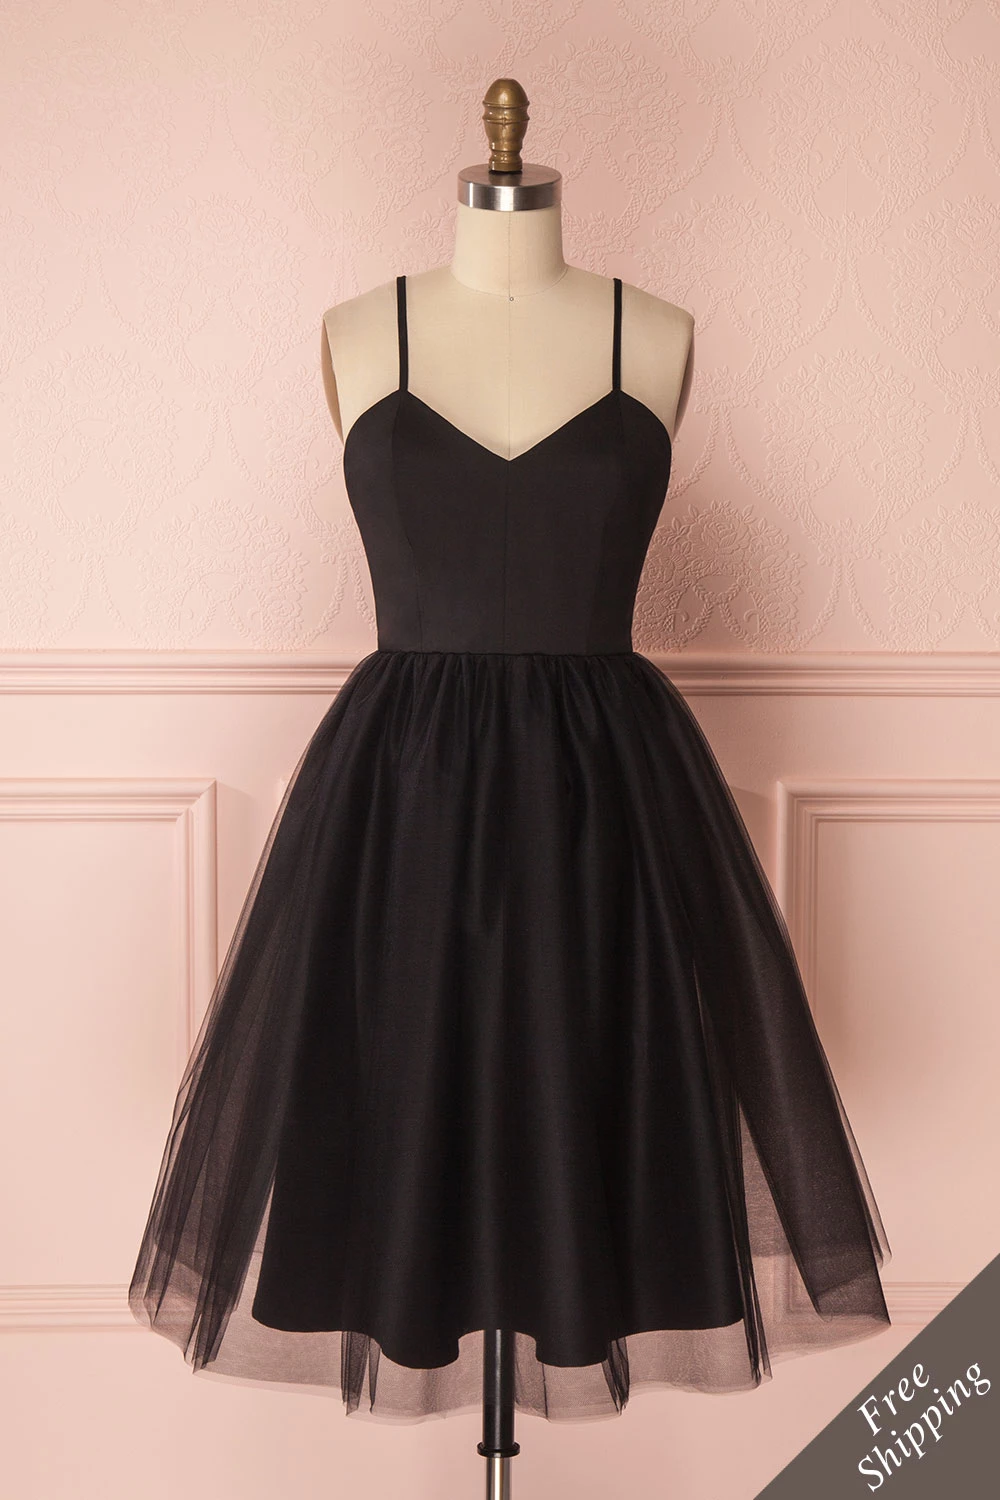 Yara Black Tulle Party Dress by Jordan de Ruiter  Boutique 14